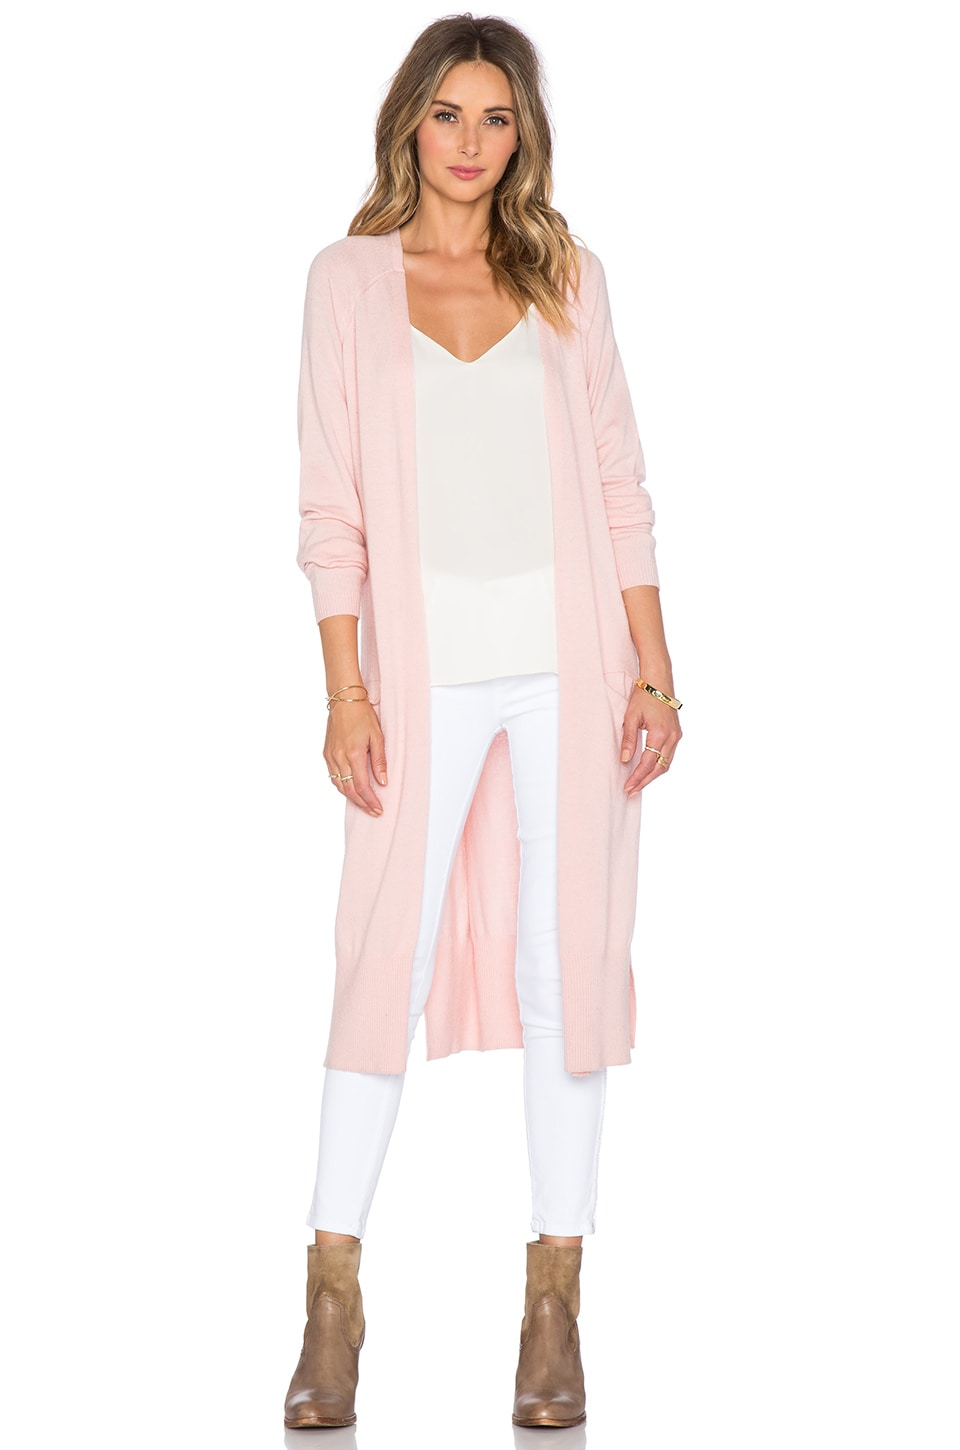 The Allflower Creative Mellow Knit Cardigan in Candy